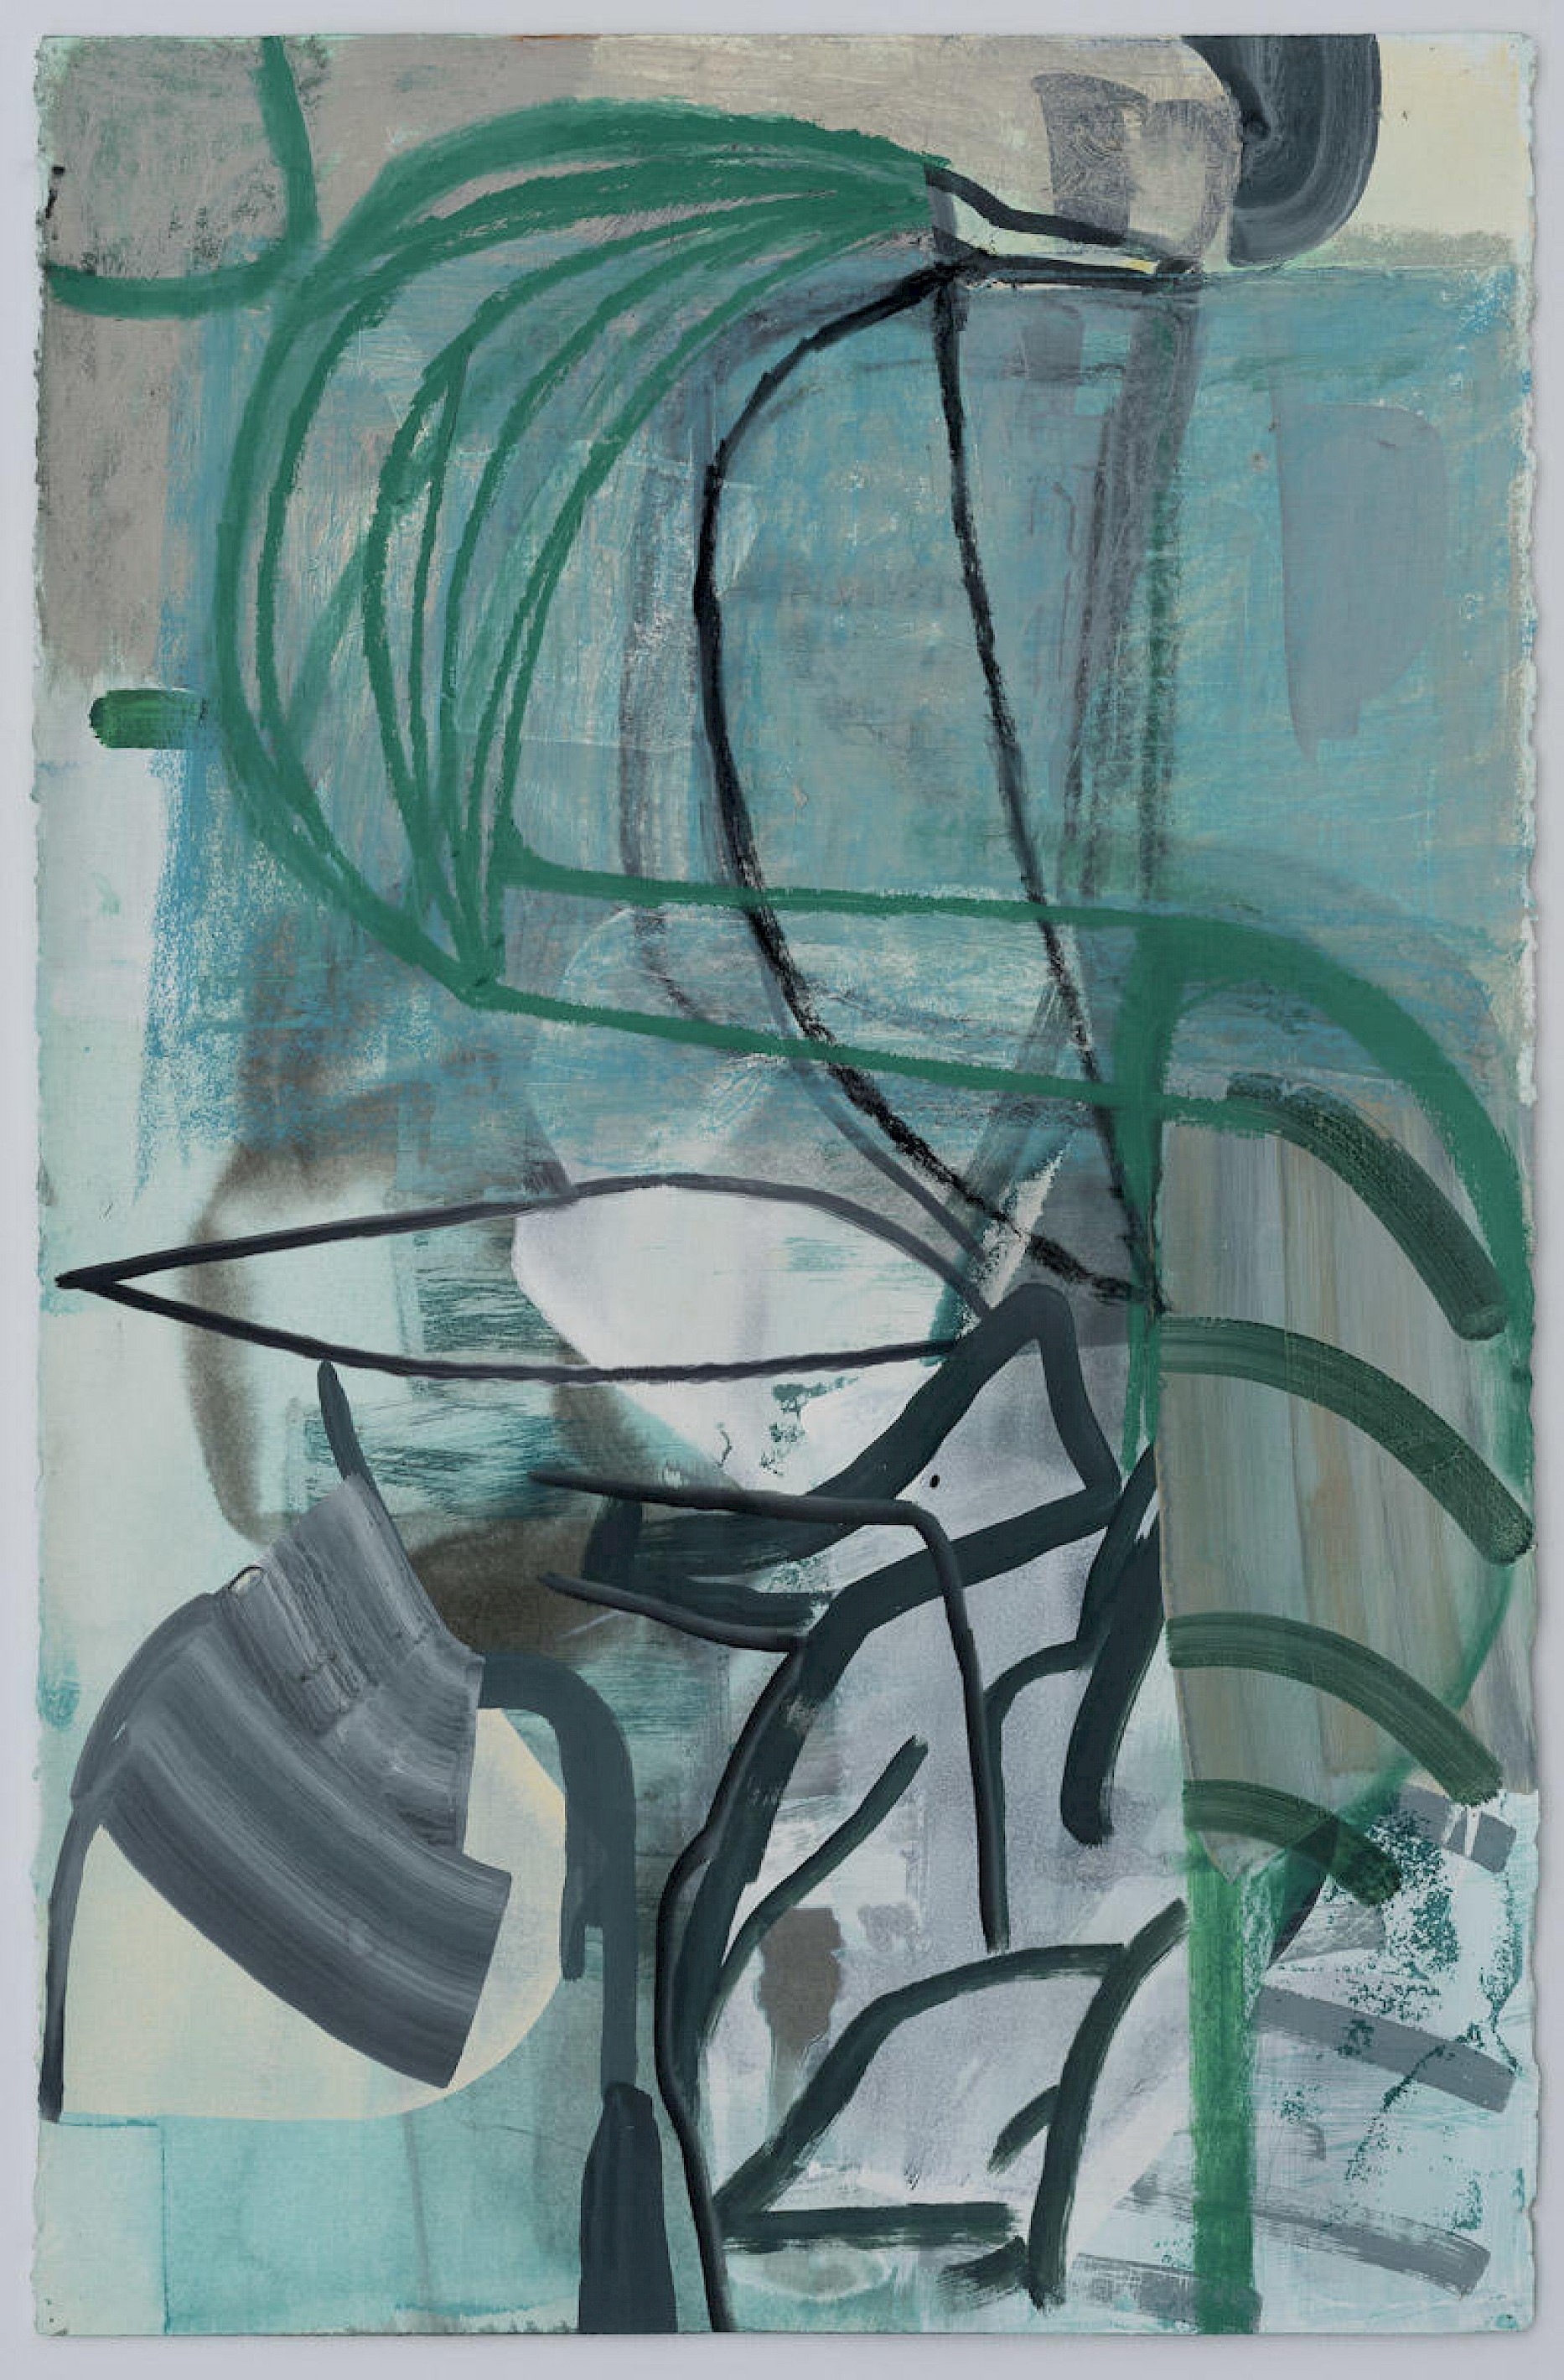 T0012156 Amy Sillman Untitled, 2019